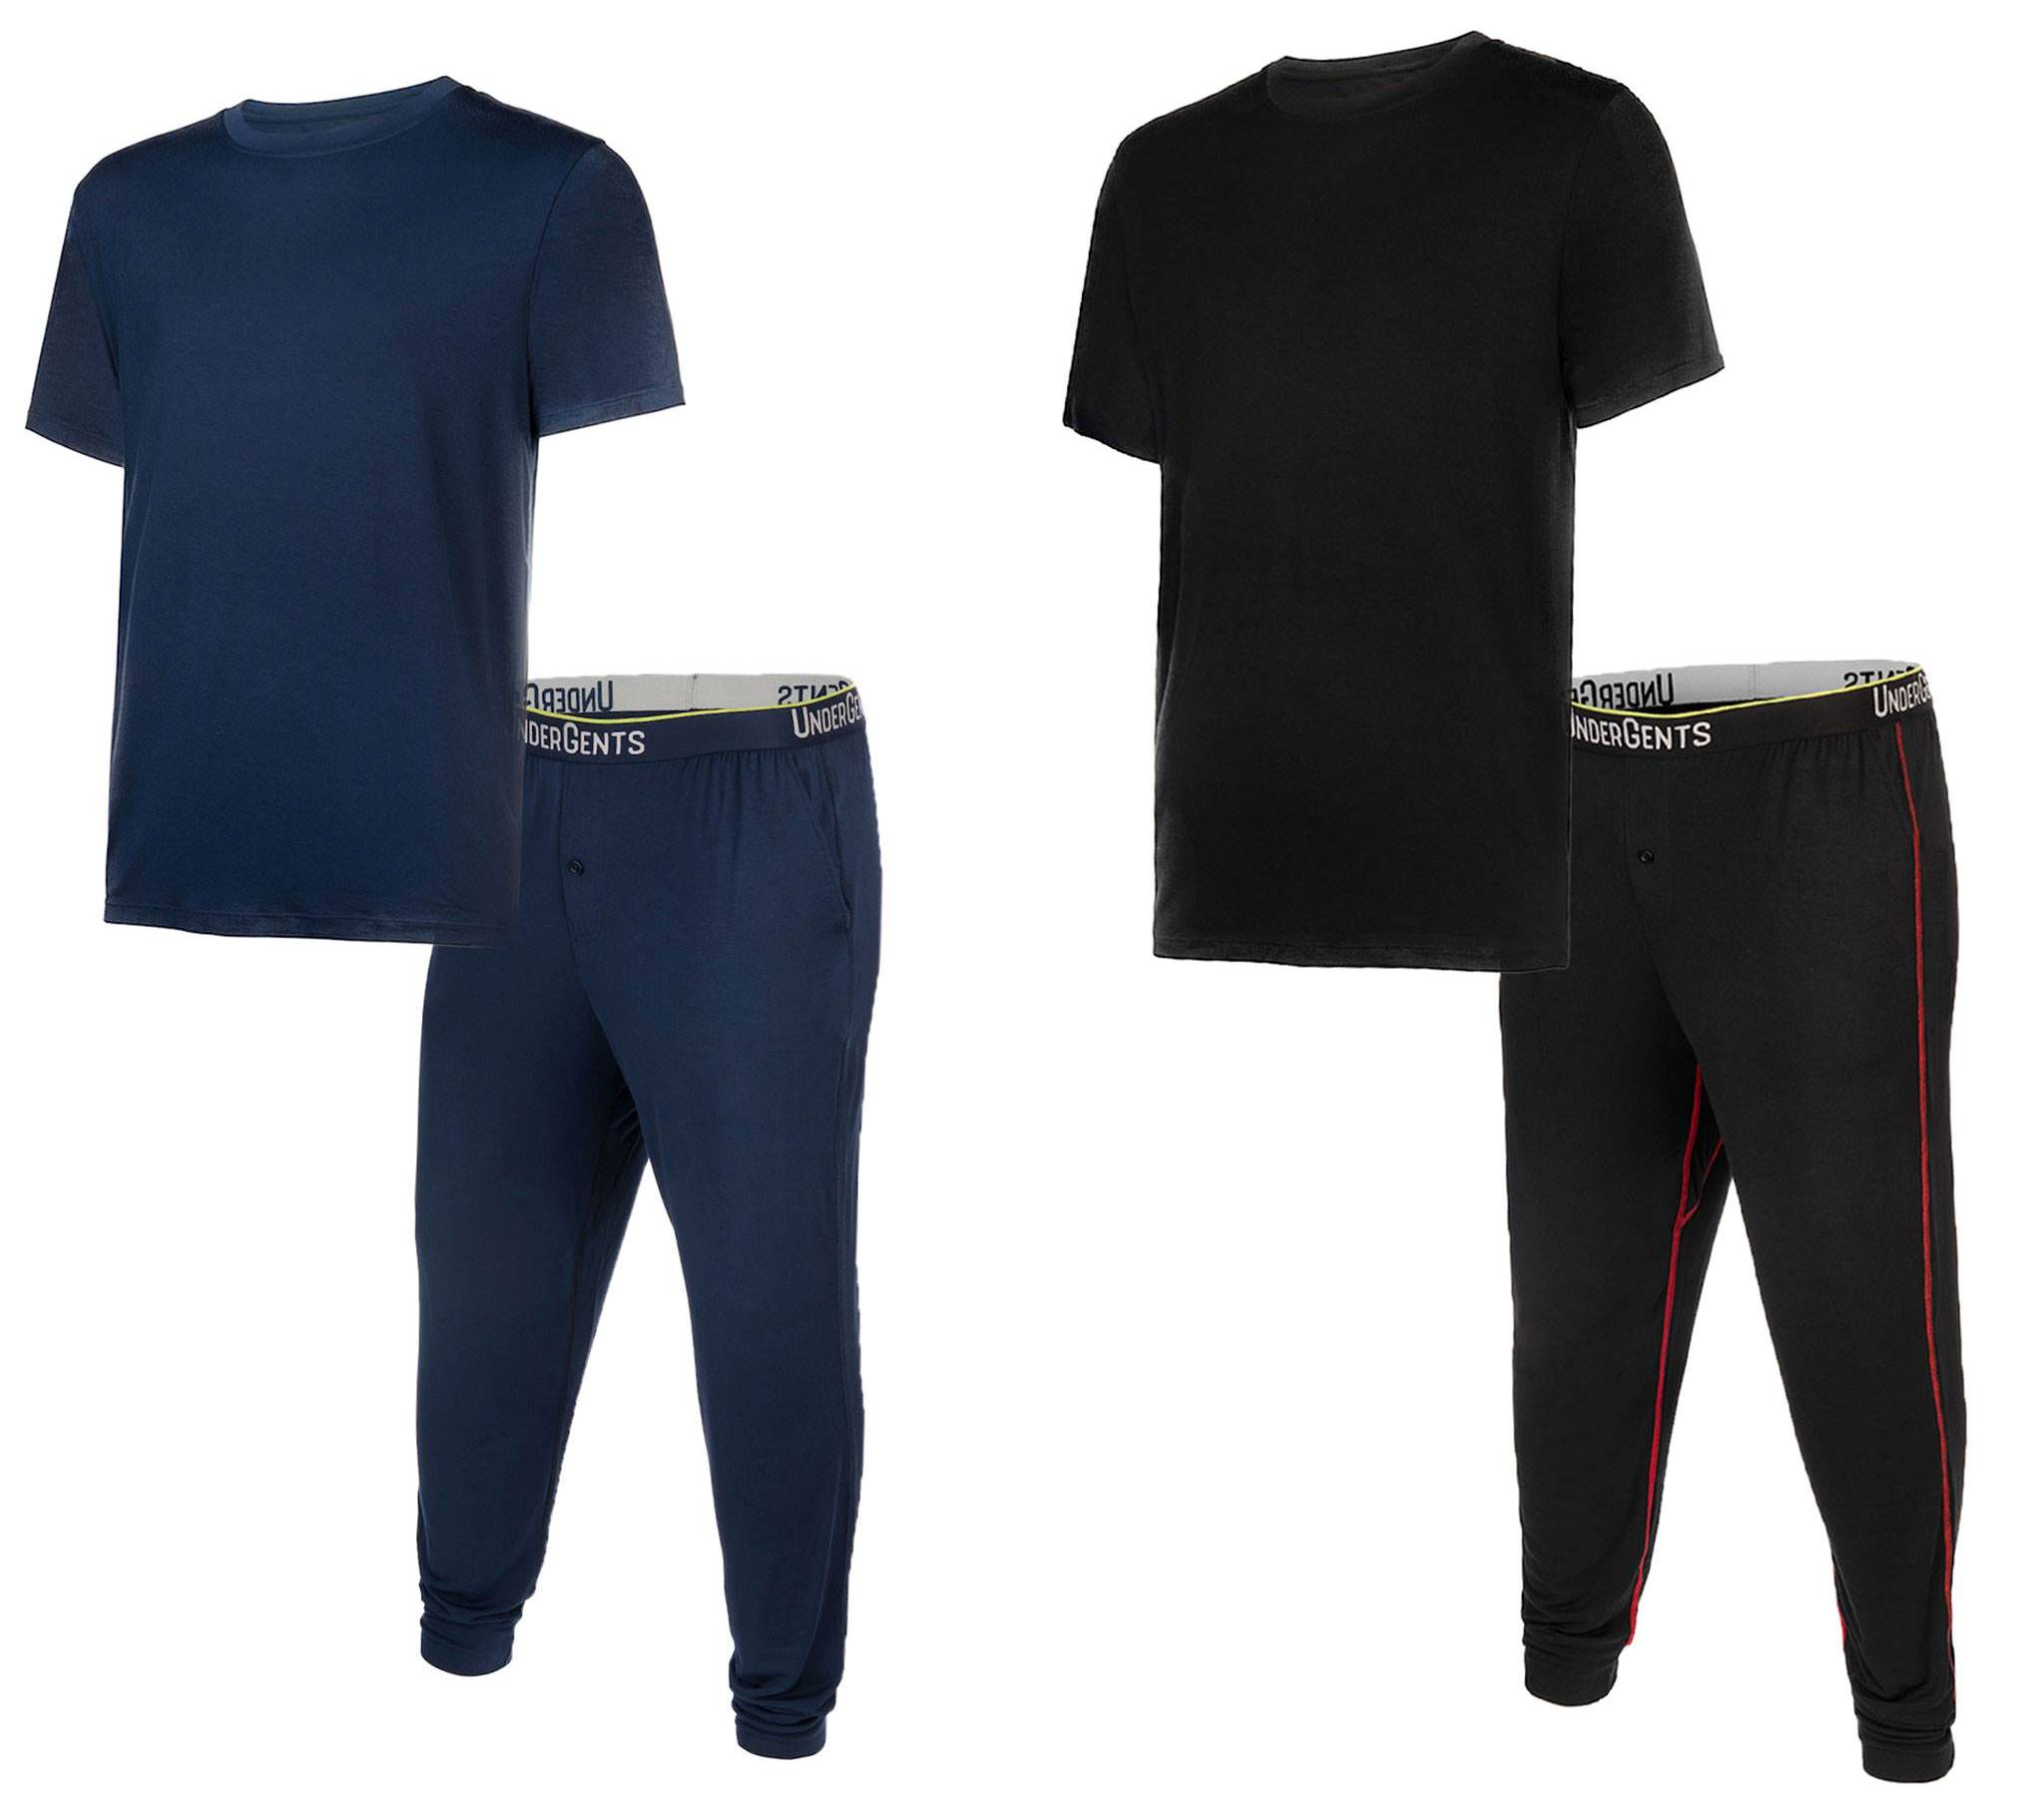 UnderGents Swagger Men's Lounge Wear collection